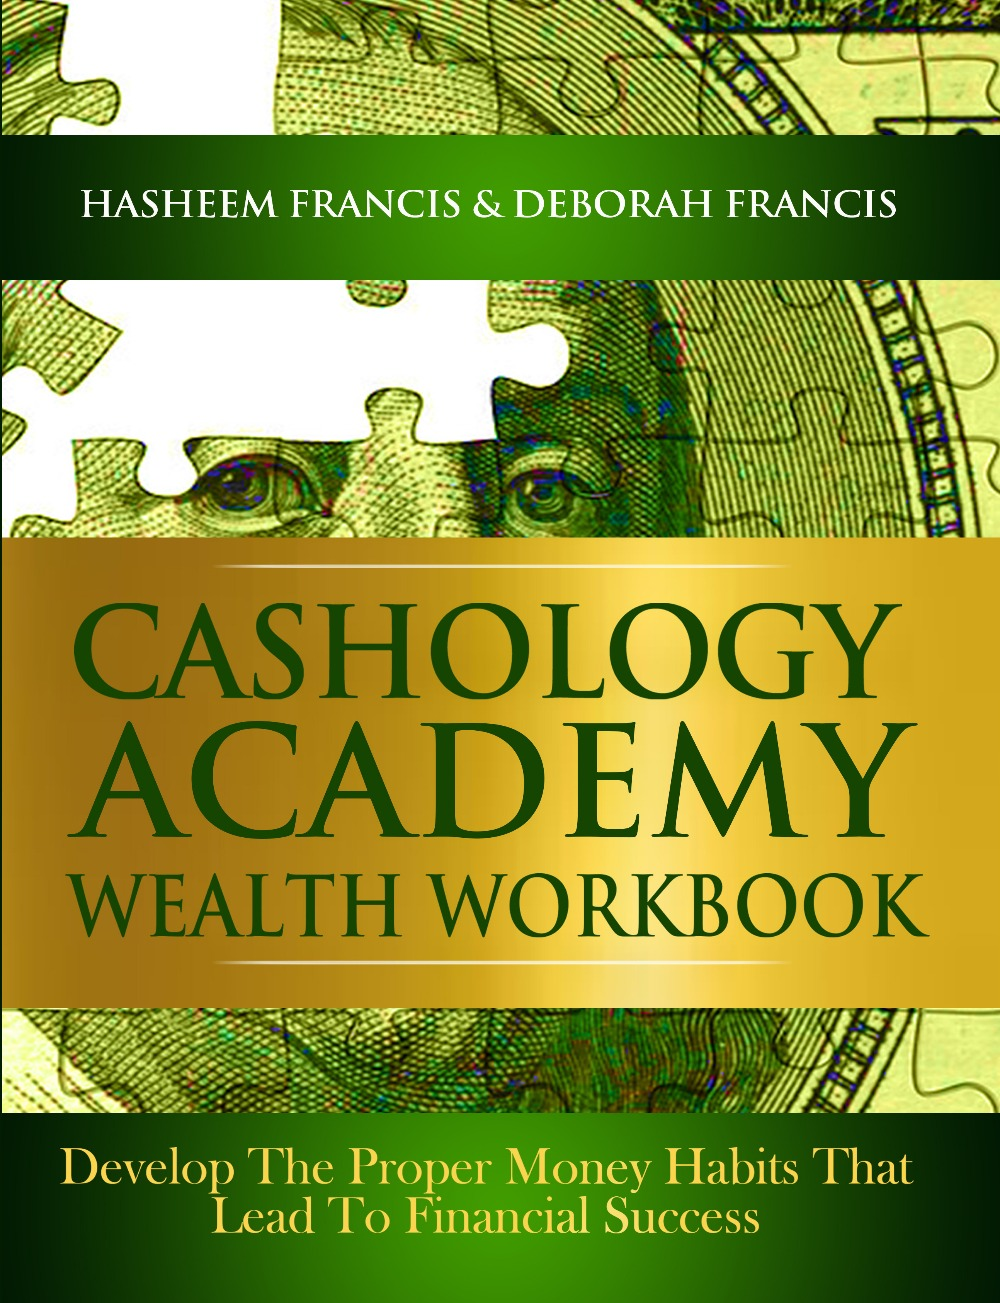 Cashology Academy Wealth Workbook